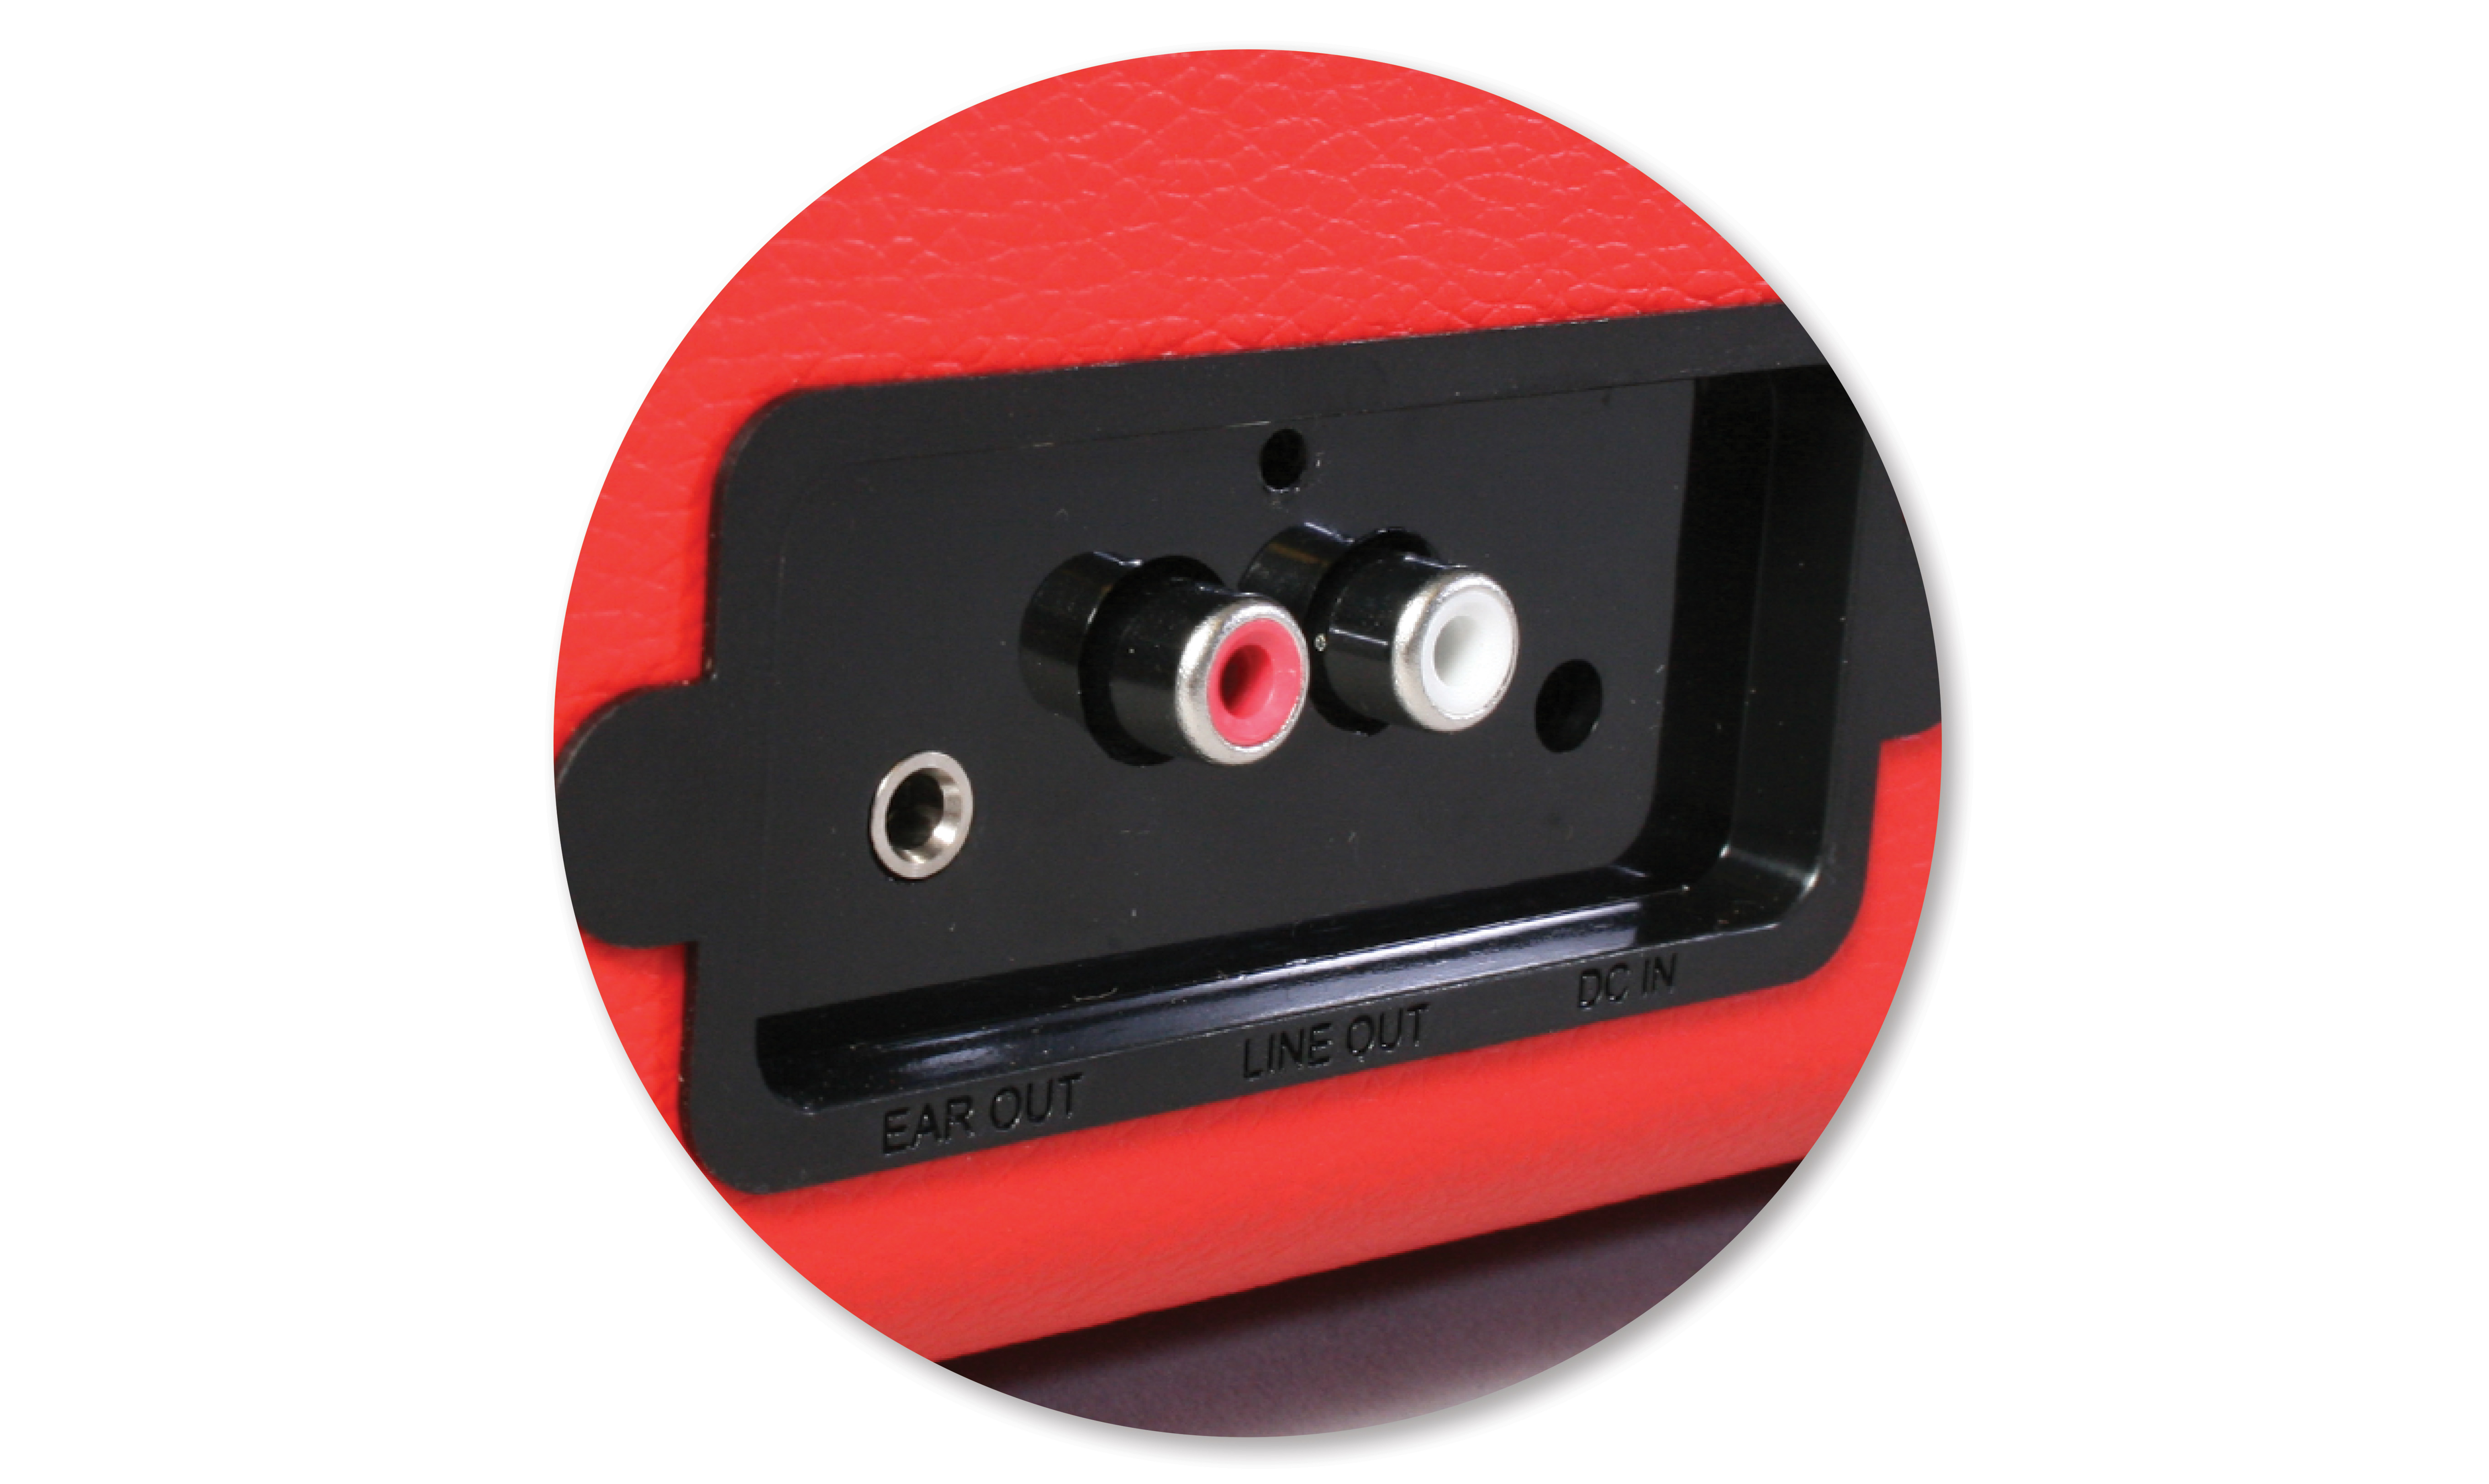 Vinyl Styl Groove Portable 3 Speed Turntable Red